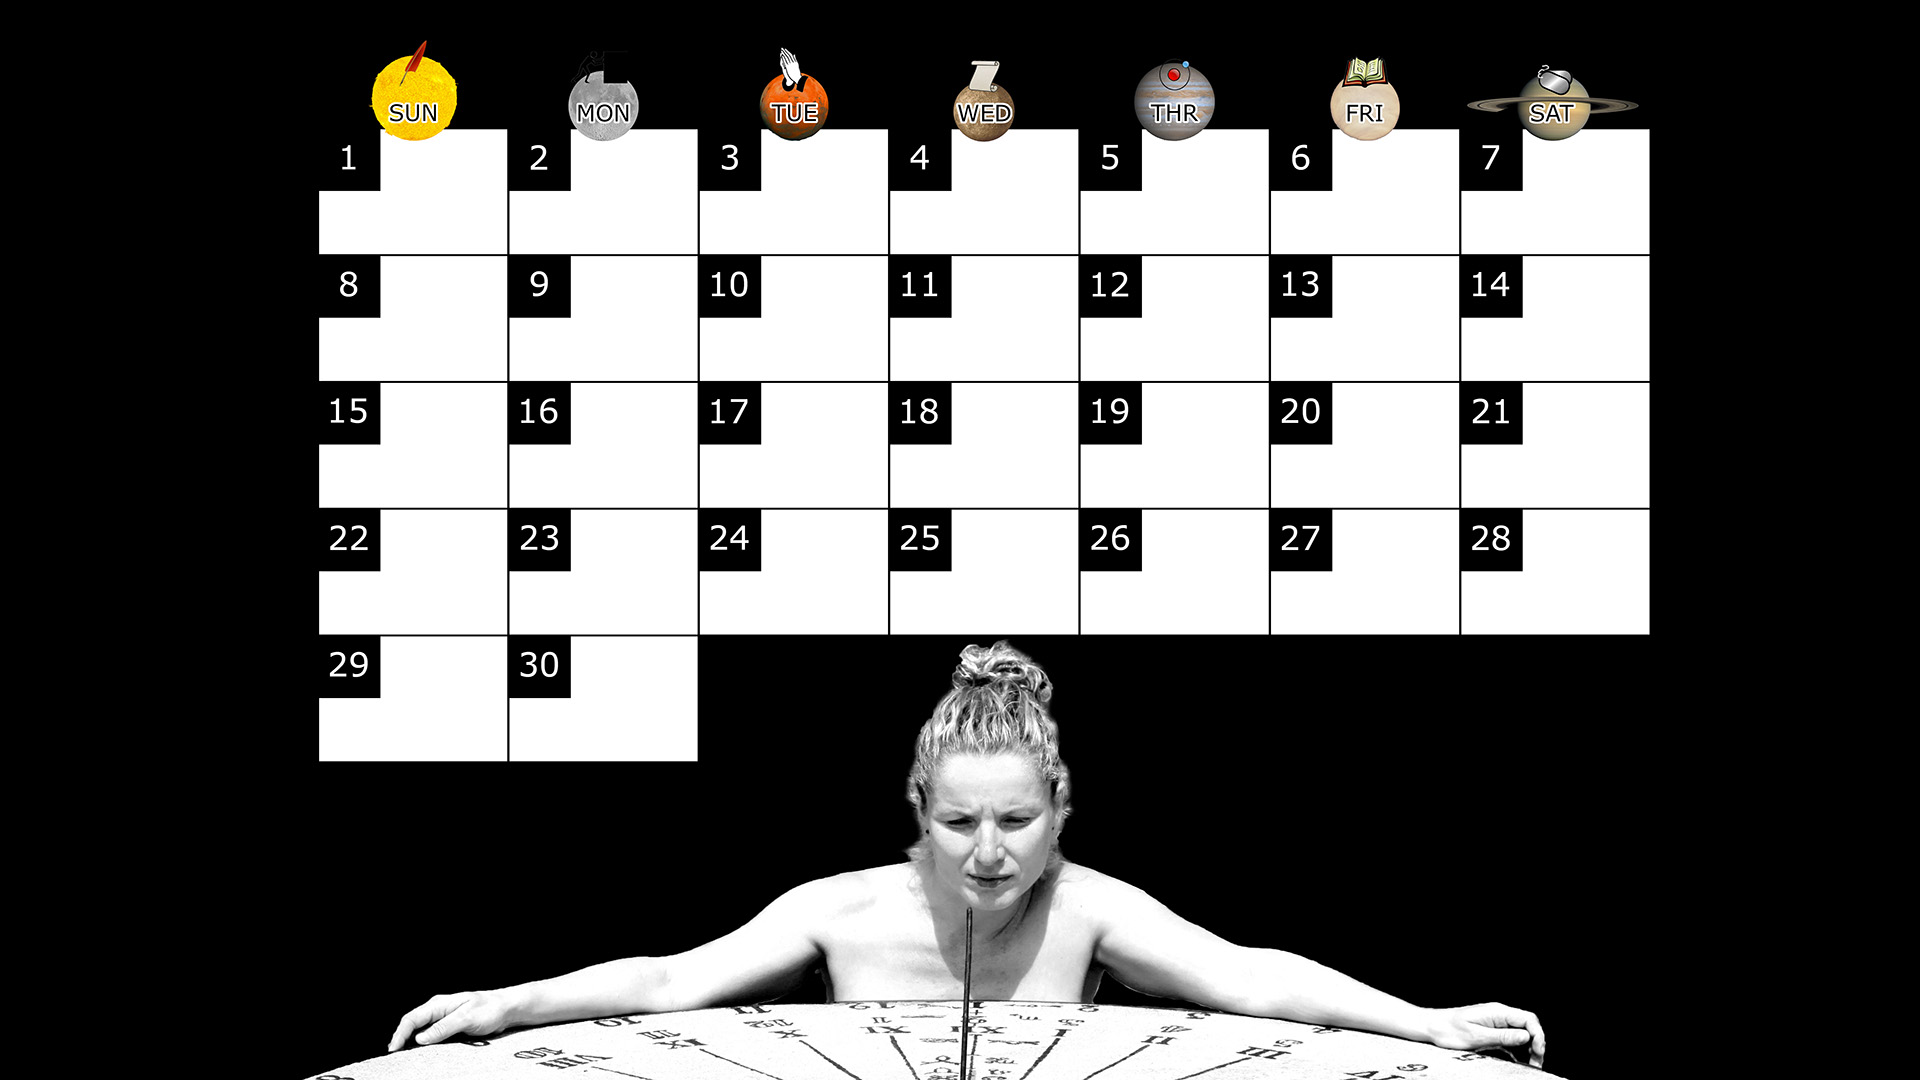 A monthly desktop calendar for June 2014 with a black background